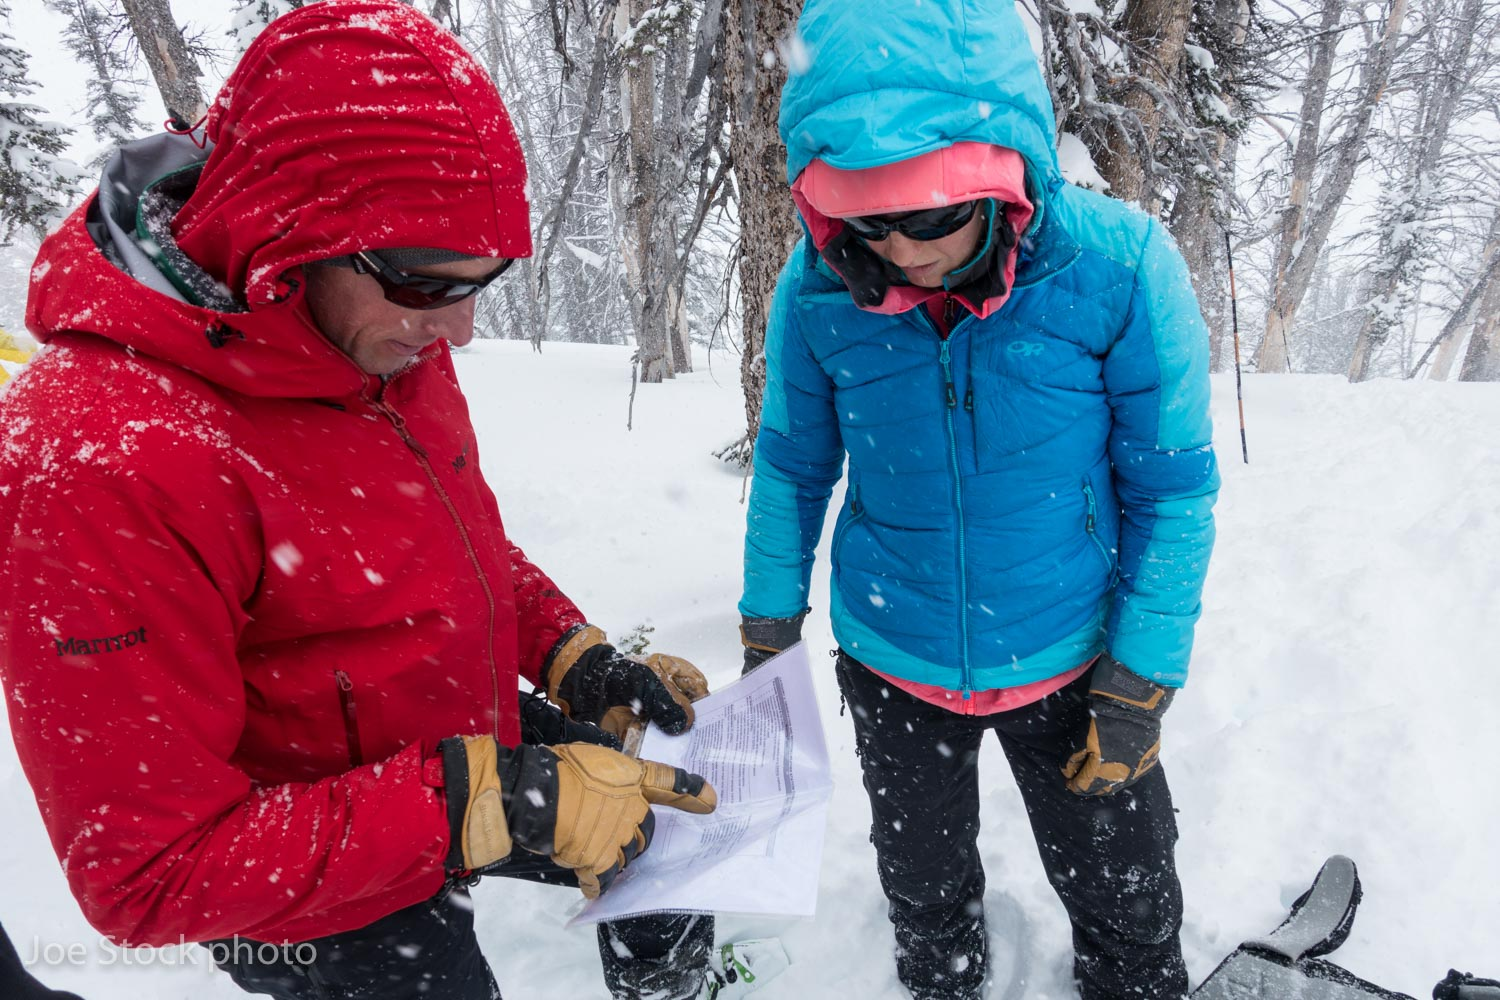 American Avalanche Institute owner Don Carpenter and IFMGA Mountain guide Erica Engle check the grading rubric for weather study plot observations during the AAA pro training course in Jackson